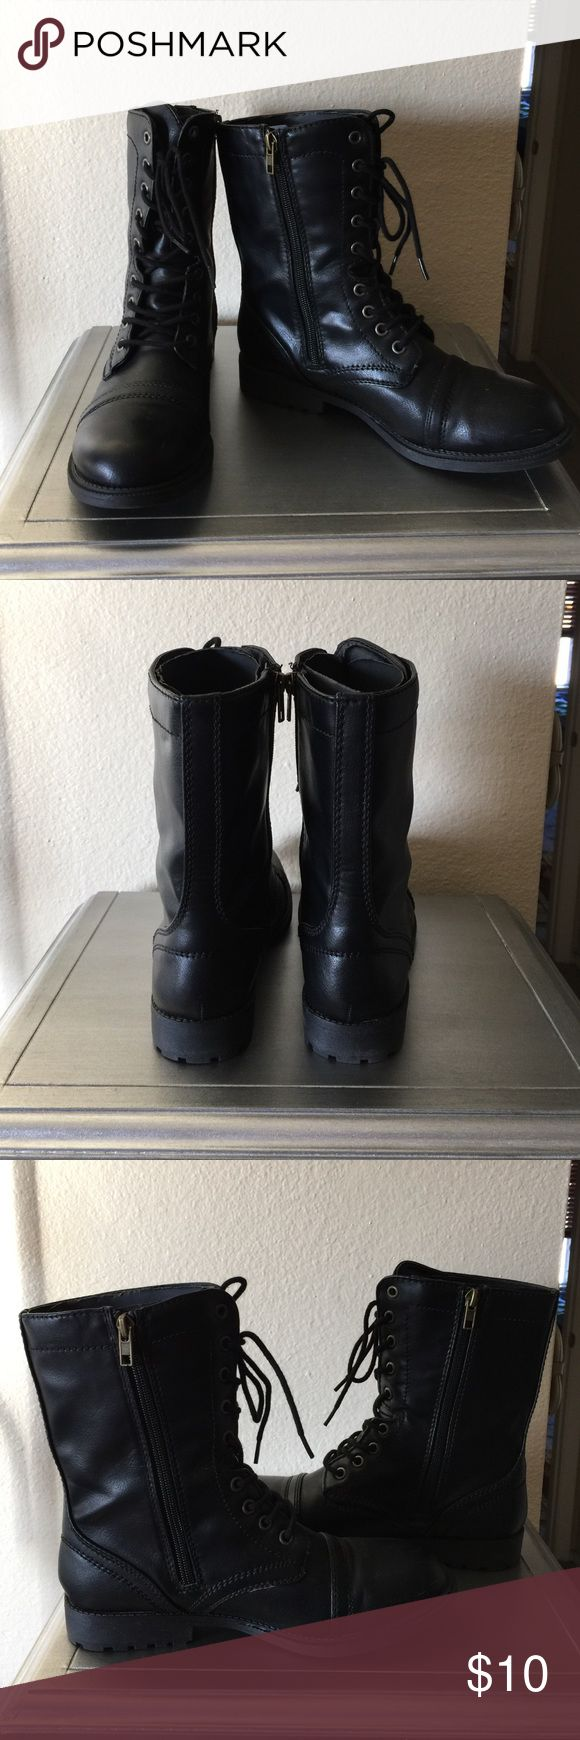 Faded Glory women's military style boots Faded Glory women's black military style boots. Size 8-1/2. Wore once for holiday themed party, & indoors only. Zips up the side & also ties in the front. Faded Glory Shoes Combat & Moto Boots